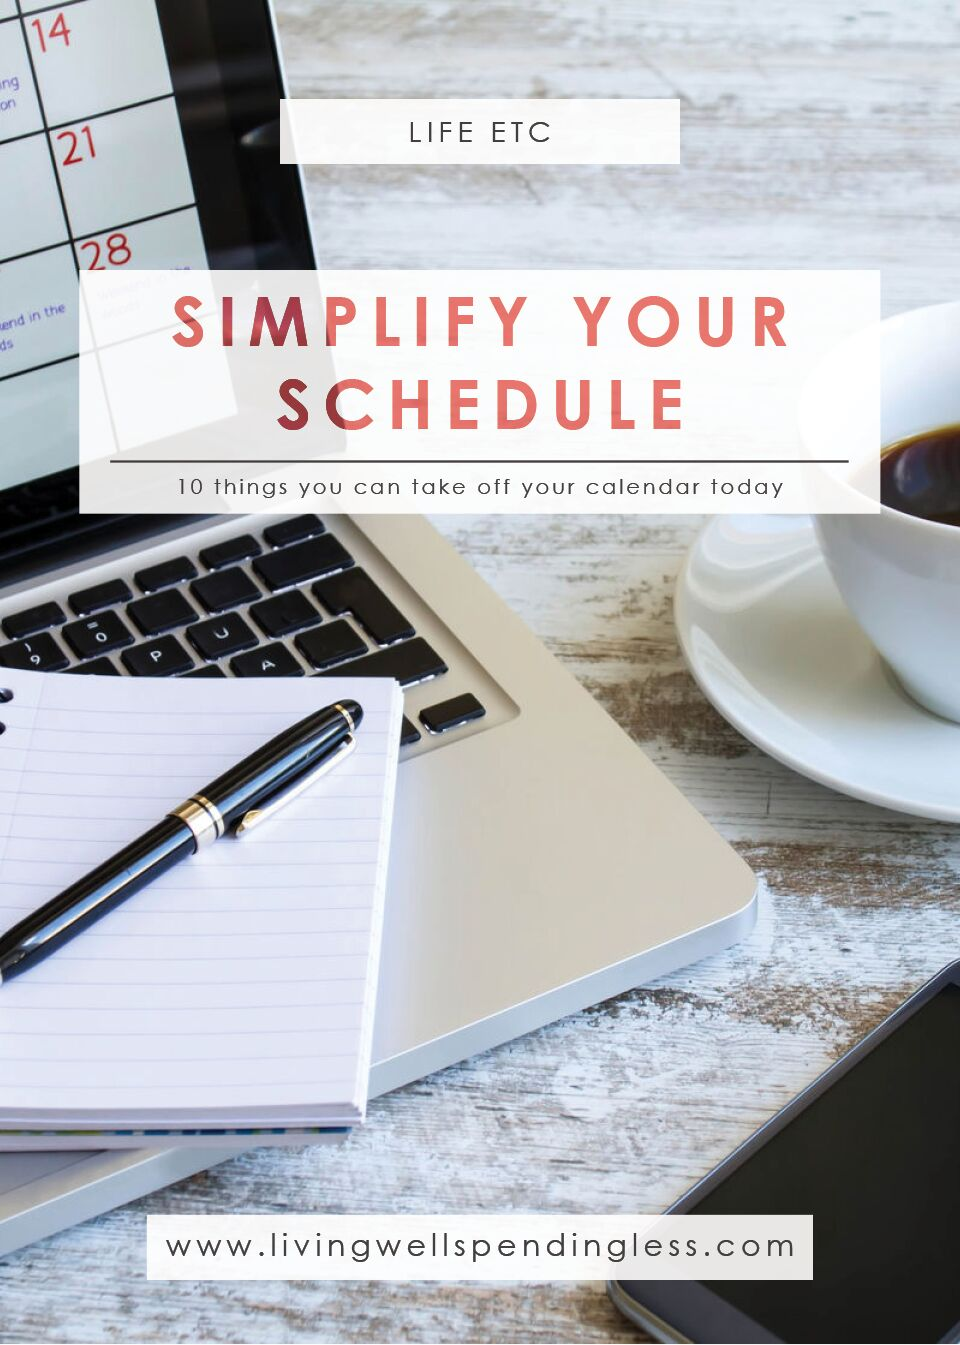 Simplify your schedule with these 10 Things You Can Take OFF Your Calendar!